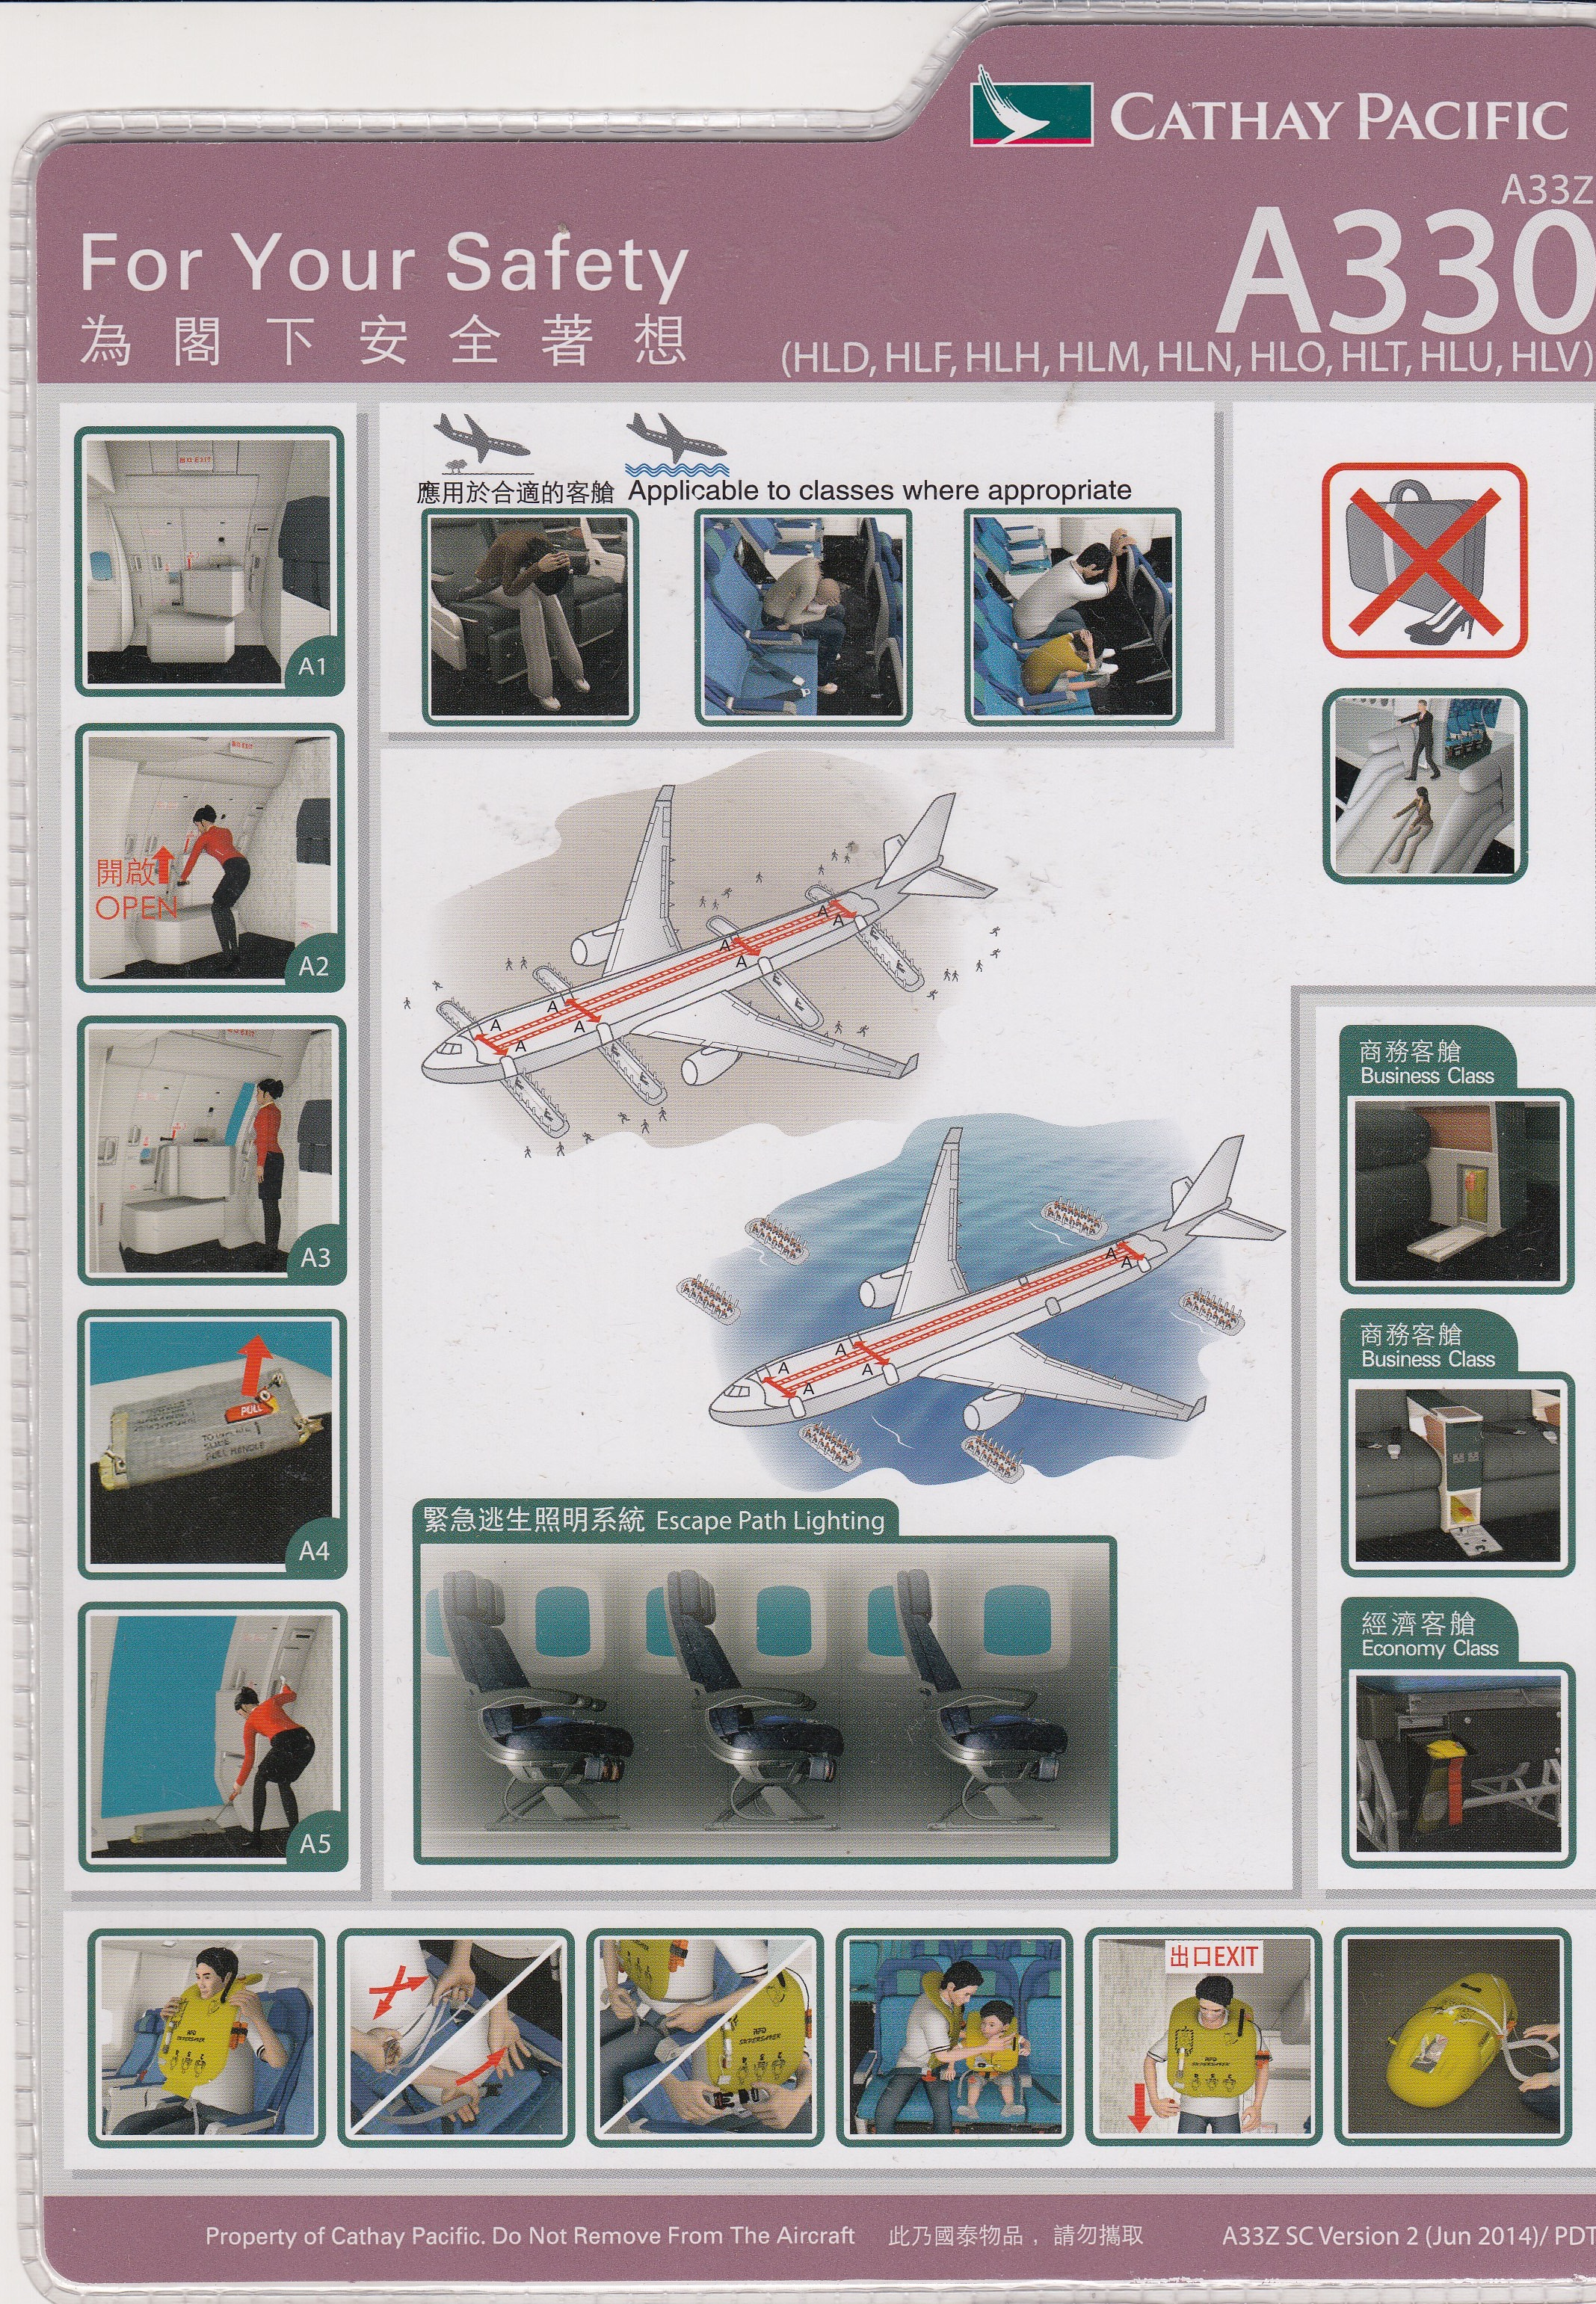 Cathay Pacific A330 Safety Card